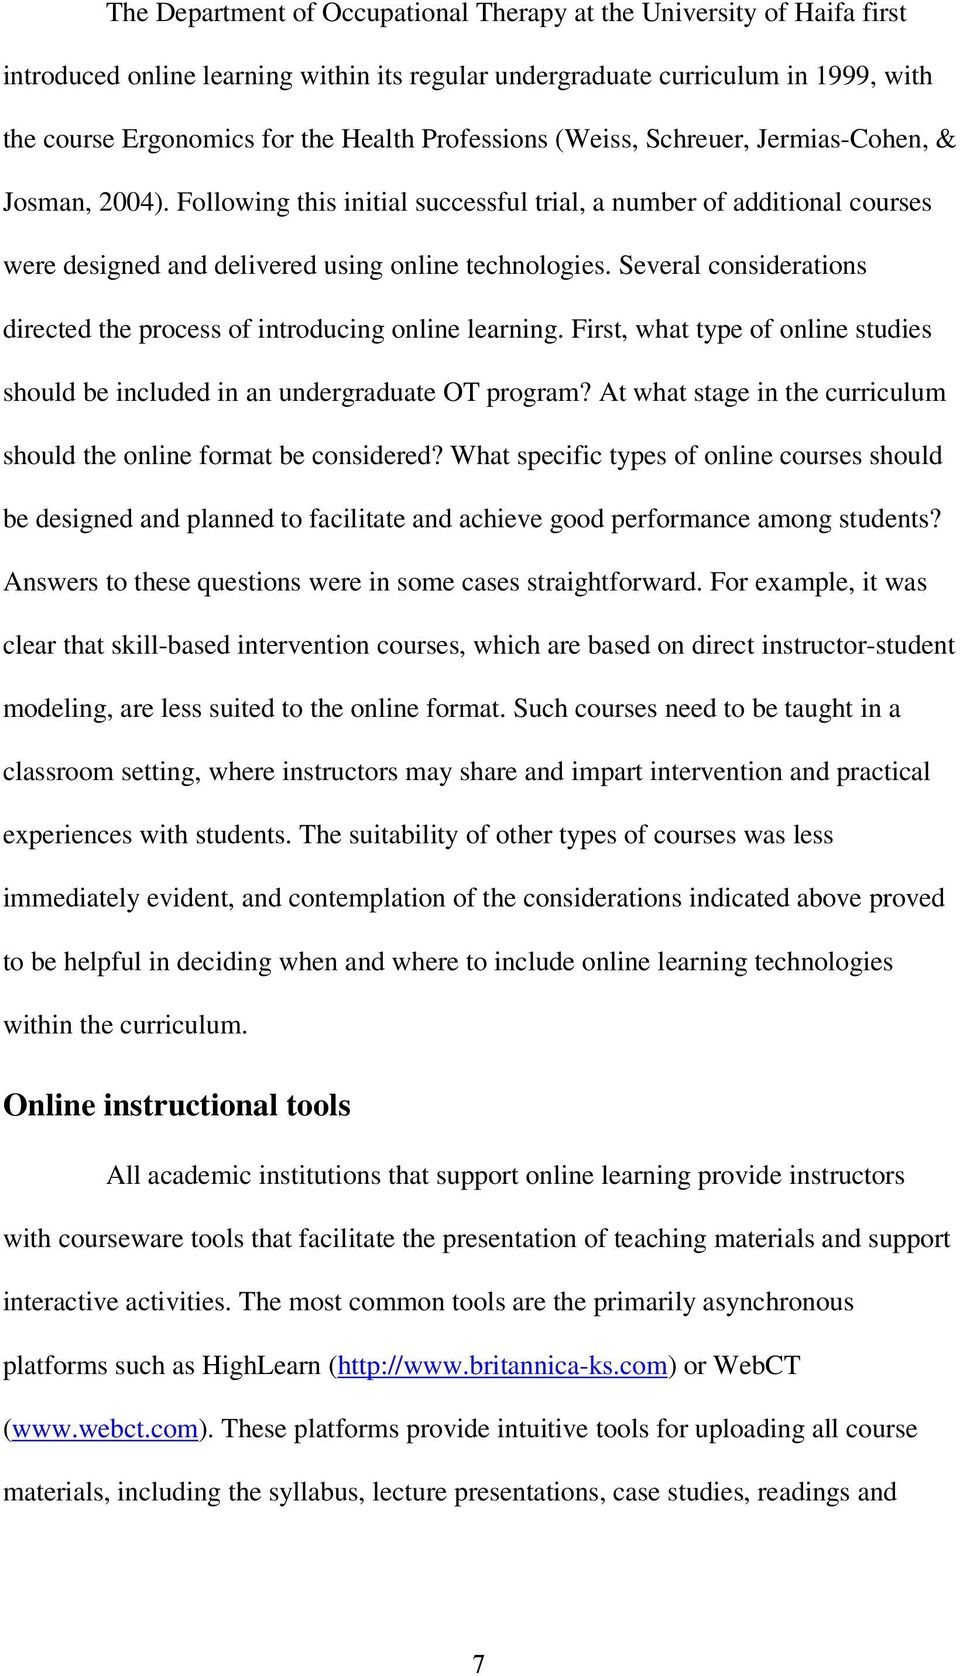 Several considerations directed the process of introducing online learning. First, what type of online studies should be included in an undergraduate OT program?